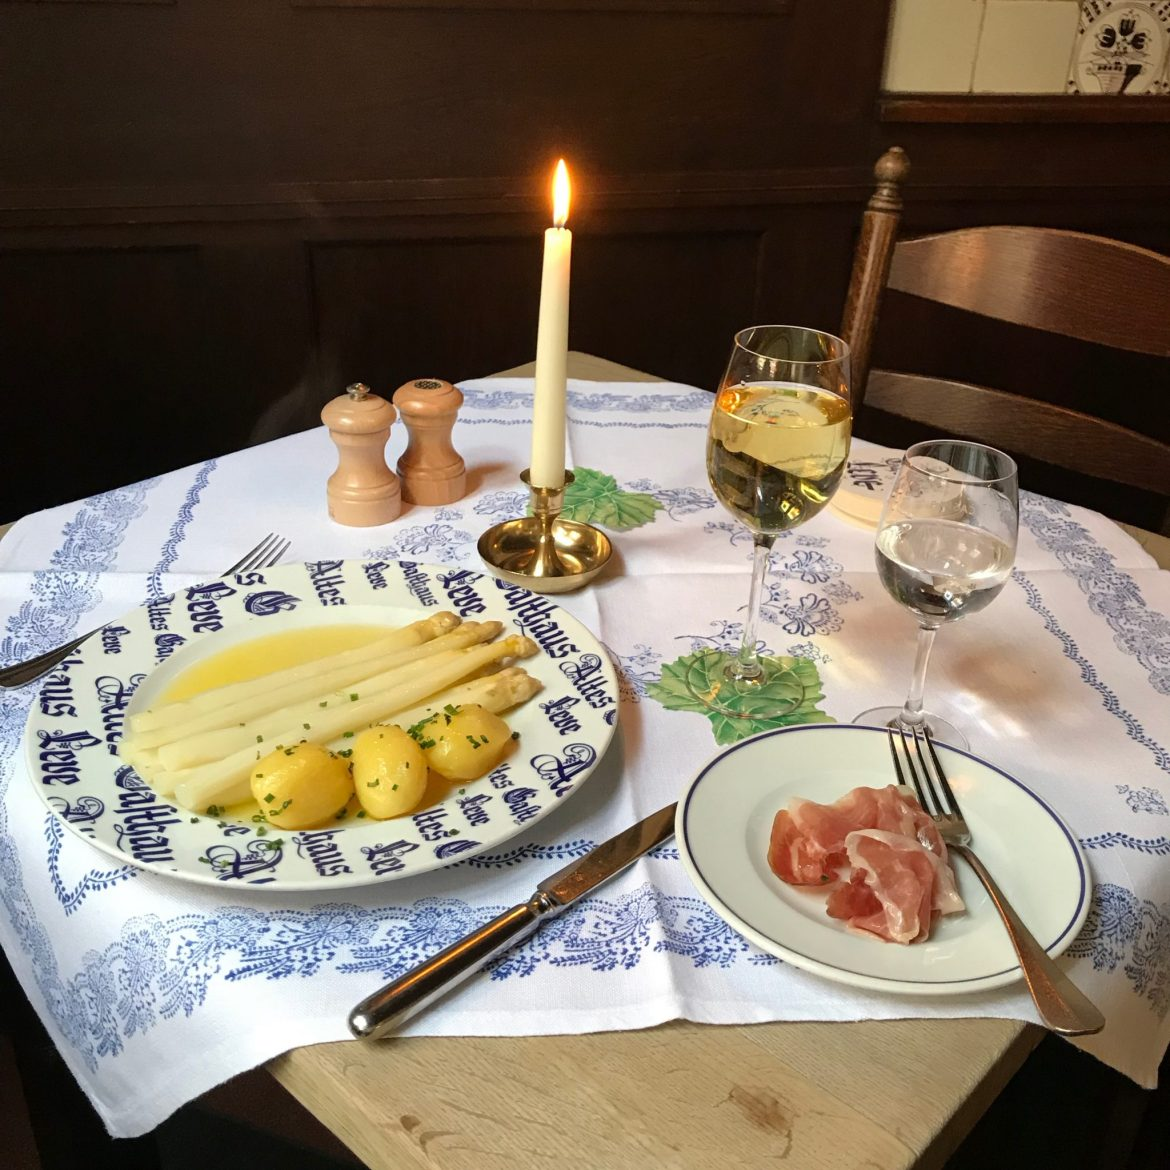 Plates of white asparagus, potatoes and ham on a wooden table